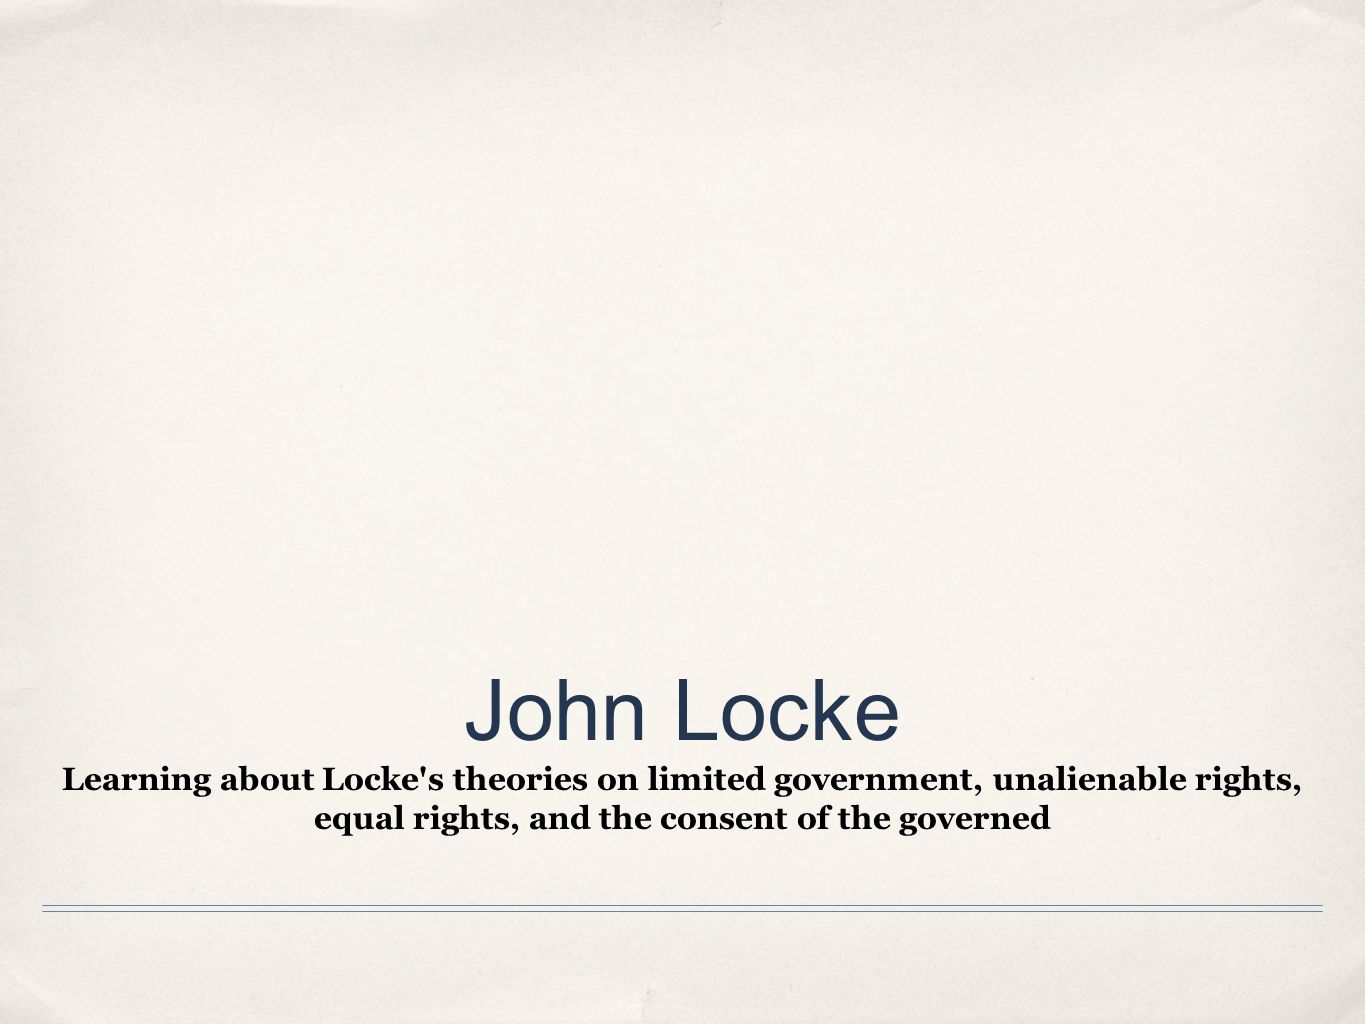 john locke's philosophy consent of the John locke's intellectual curiosity and social activism also led him to consider   any civil government depends on the consent of those who are governed, which .